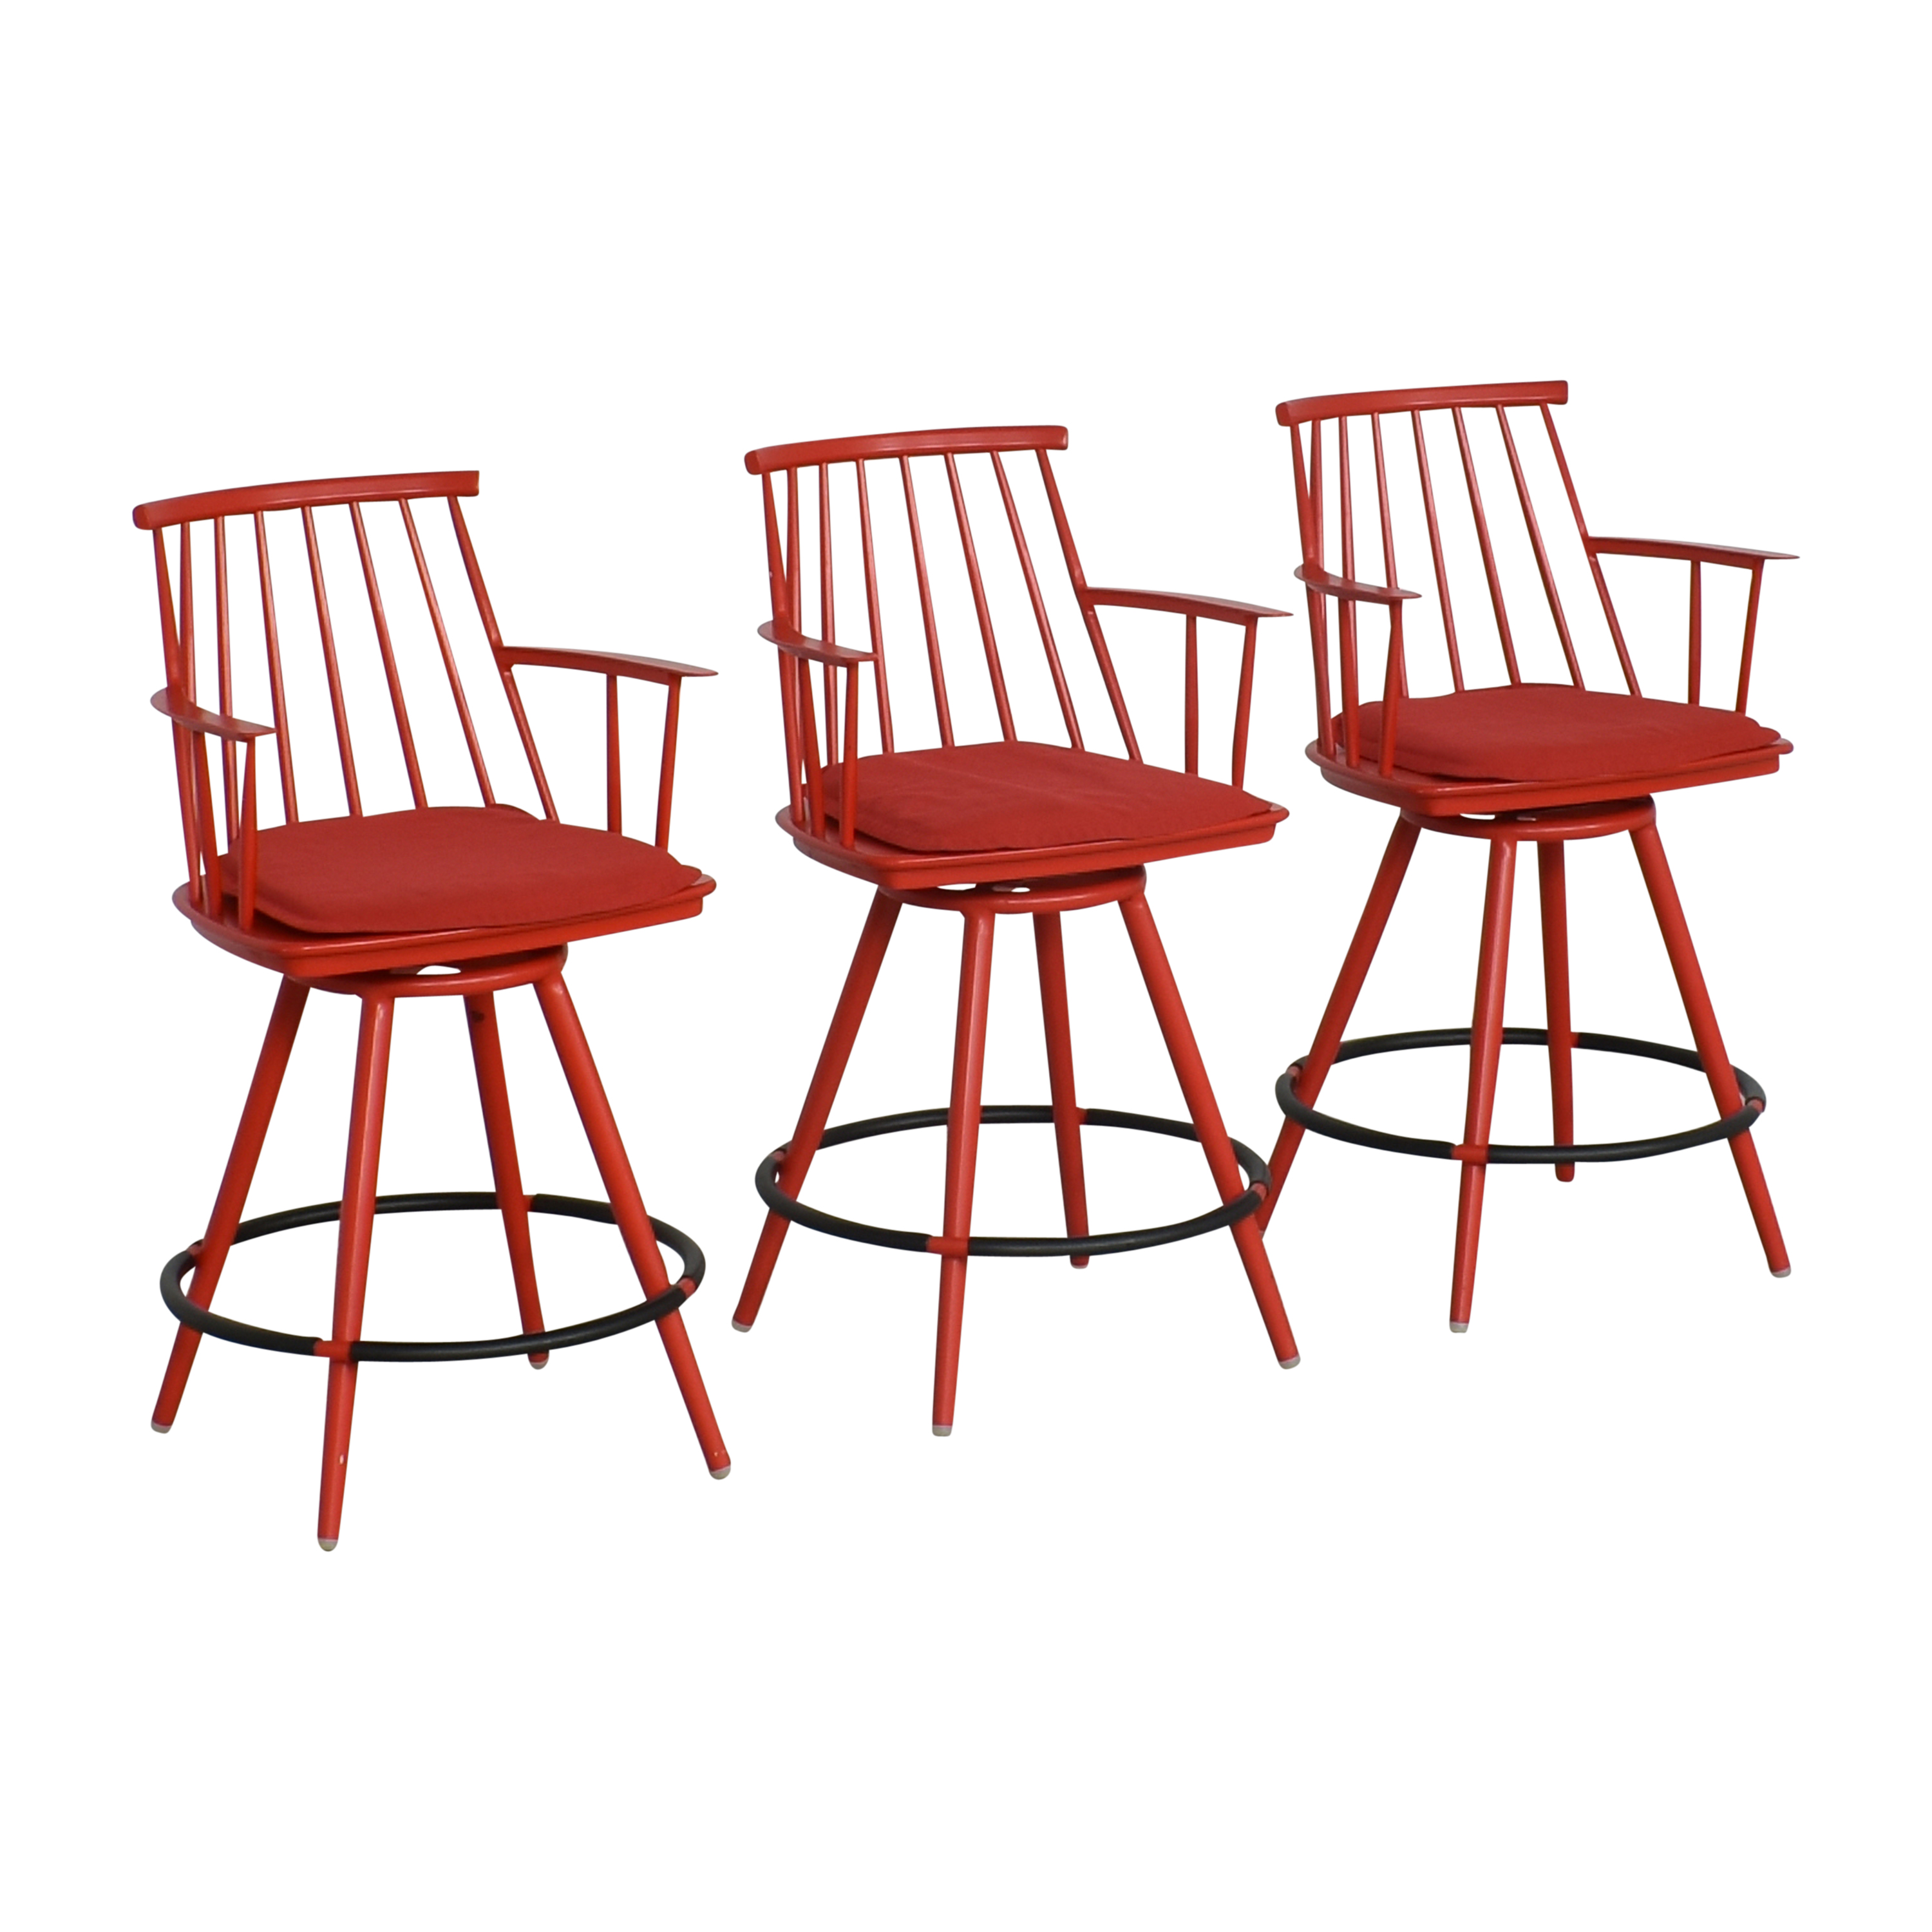 Crate & Barrel Union Swivel Counter Stools with Cushions / Chairs